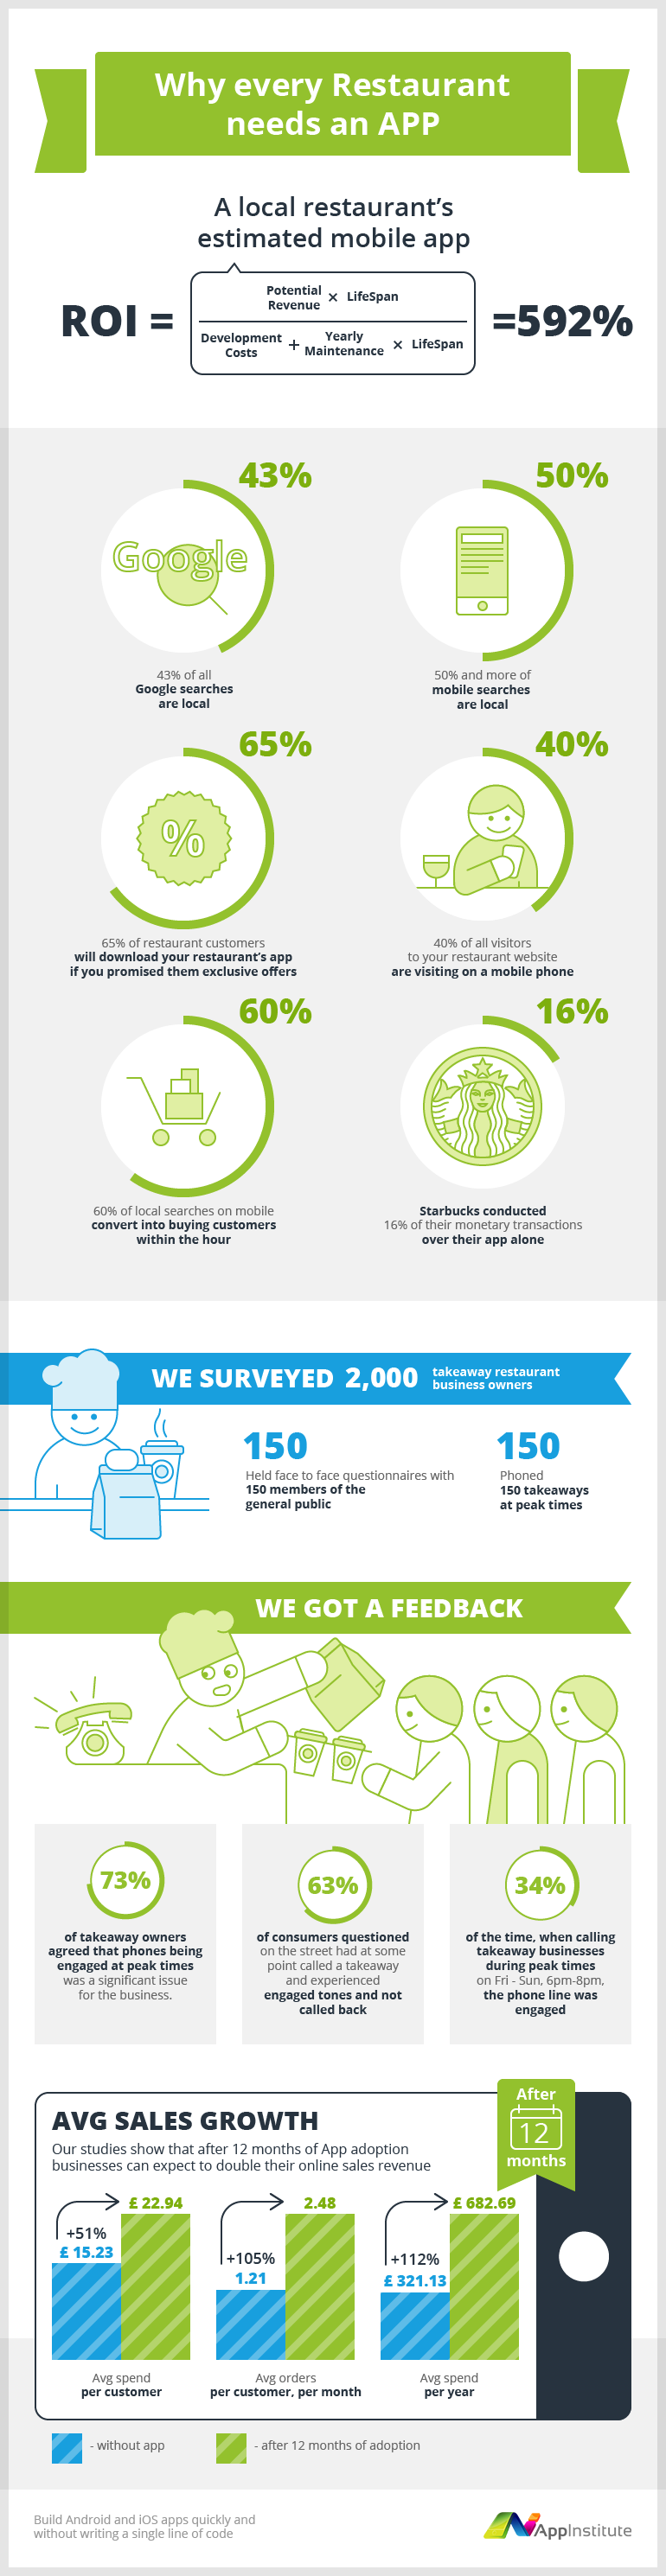 why every restaurant needs an app infographic